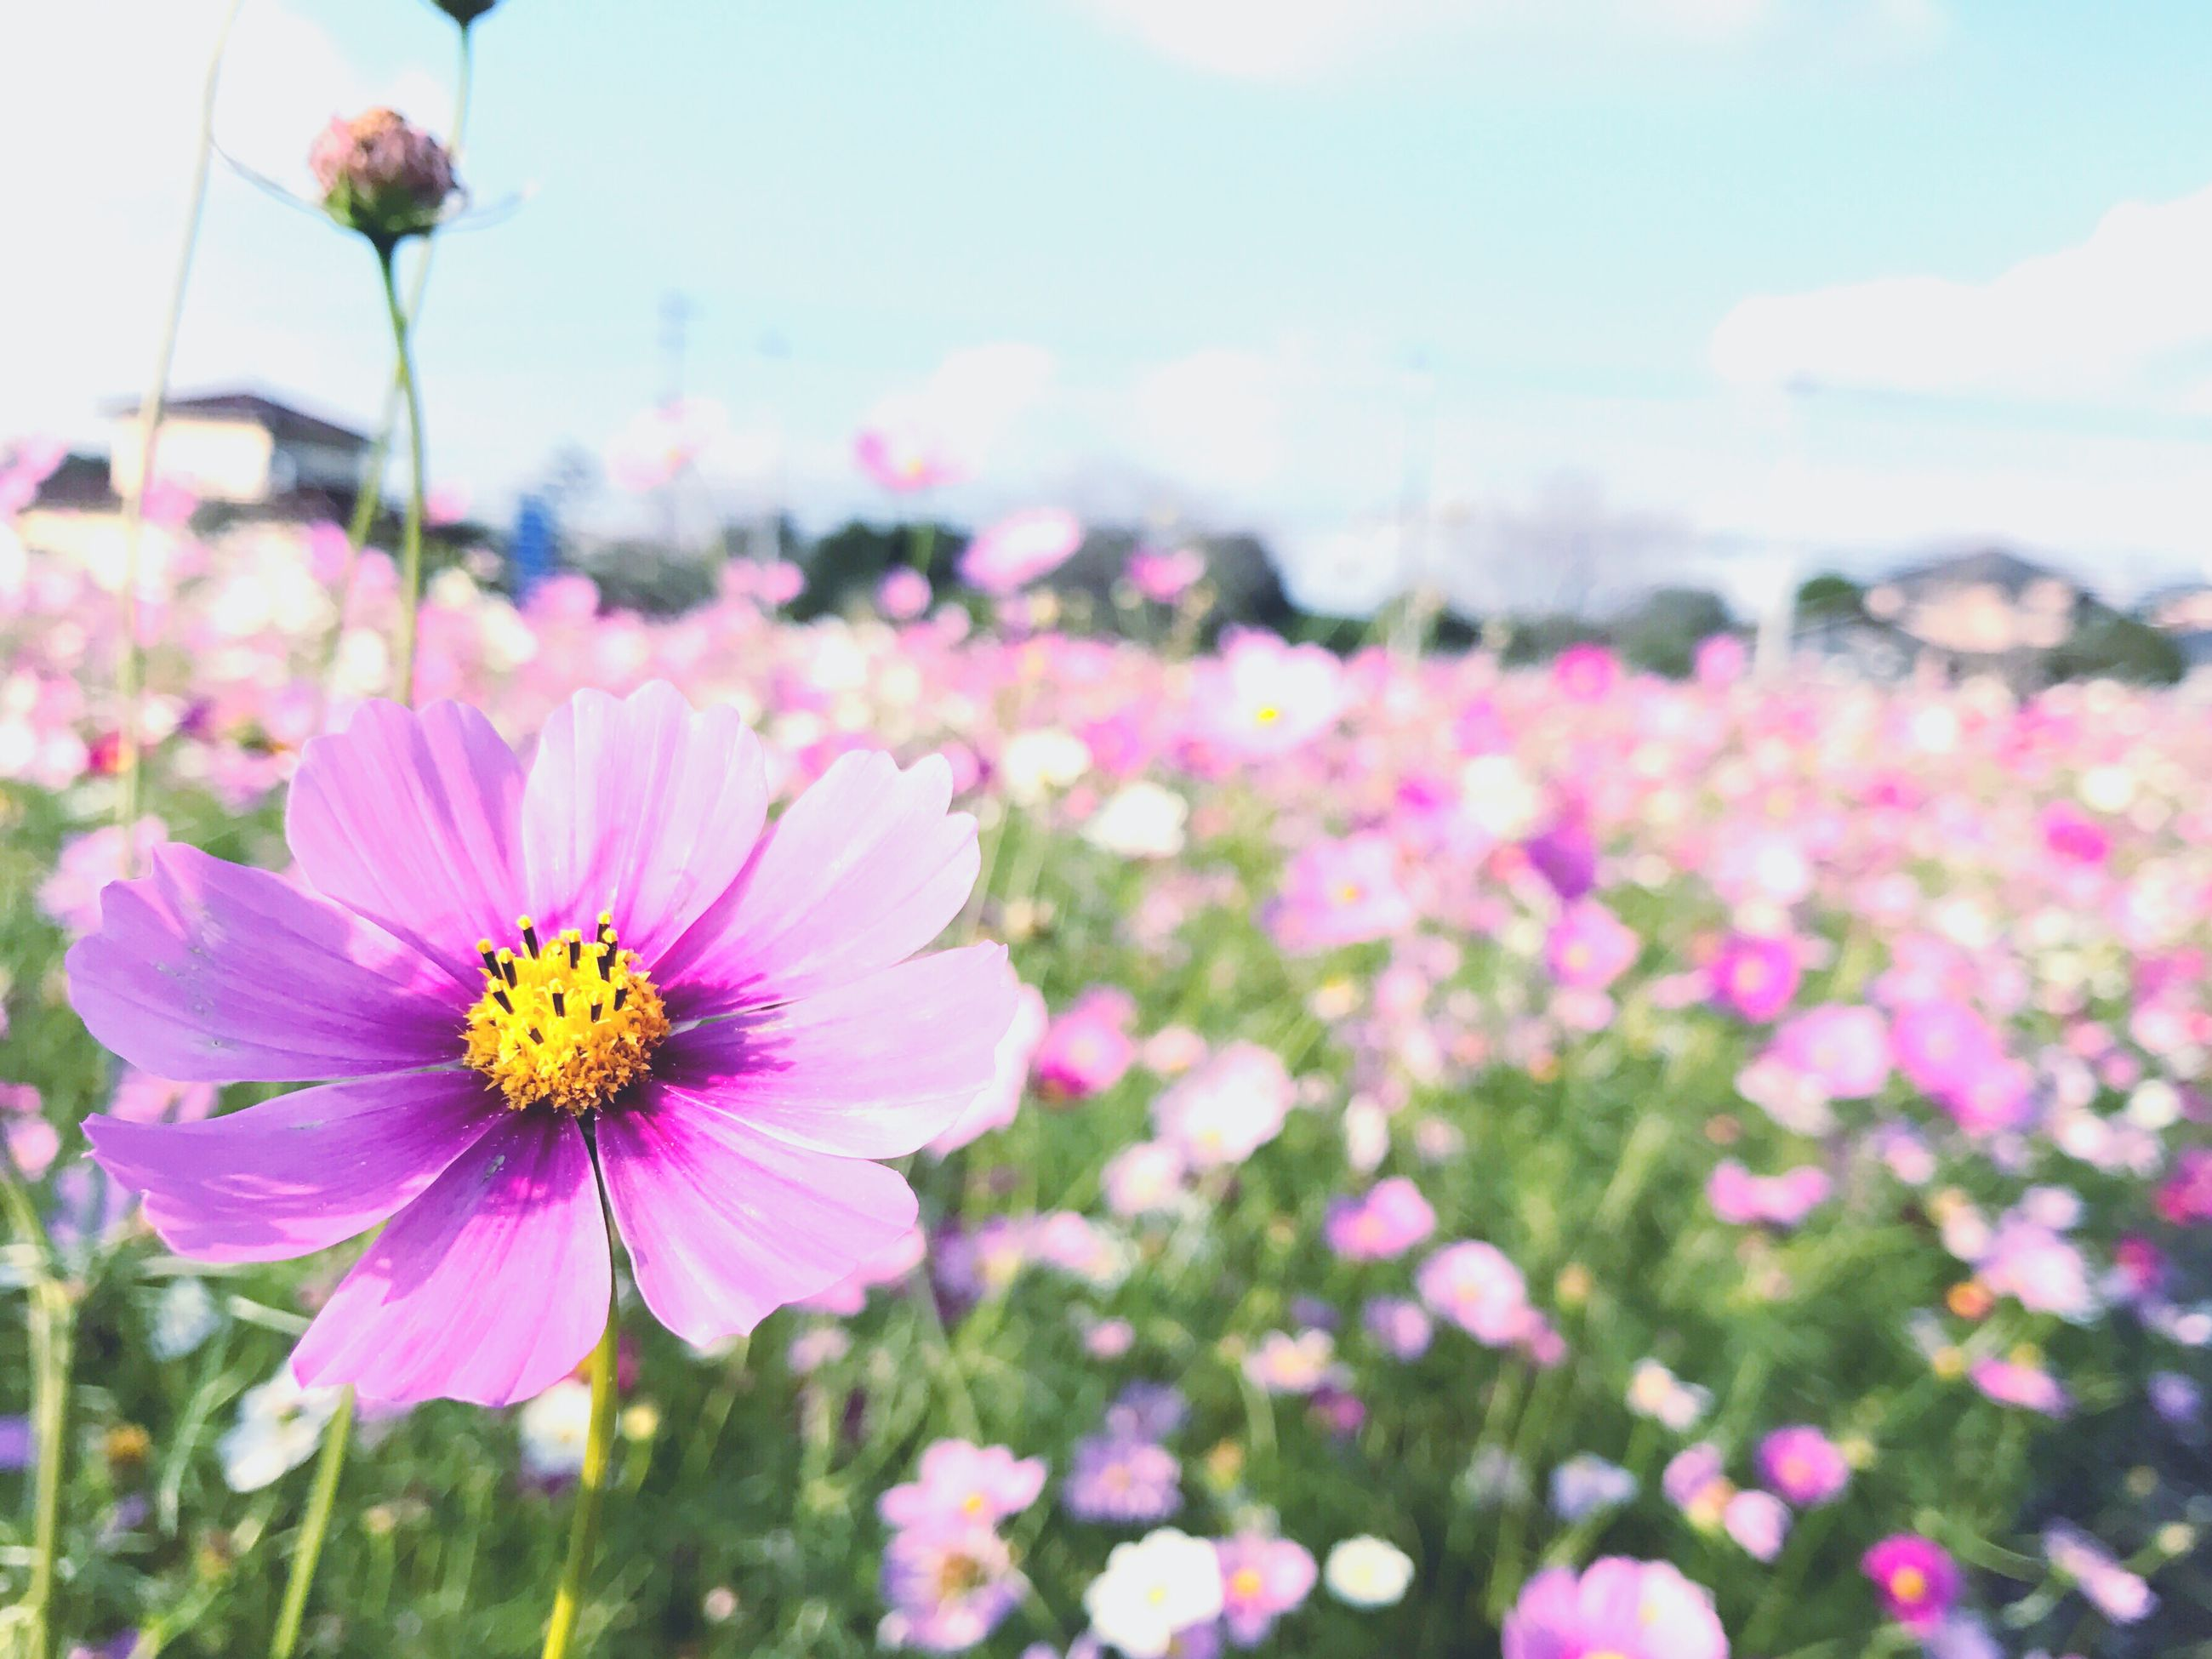 flower, fragility, freshness, beauty in nature, nature, flower head, petal, pink color, growth, blooming, focus on foreground, plant, close-up, field, no people, pollen, day, outdoors, eastern purple coneflower